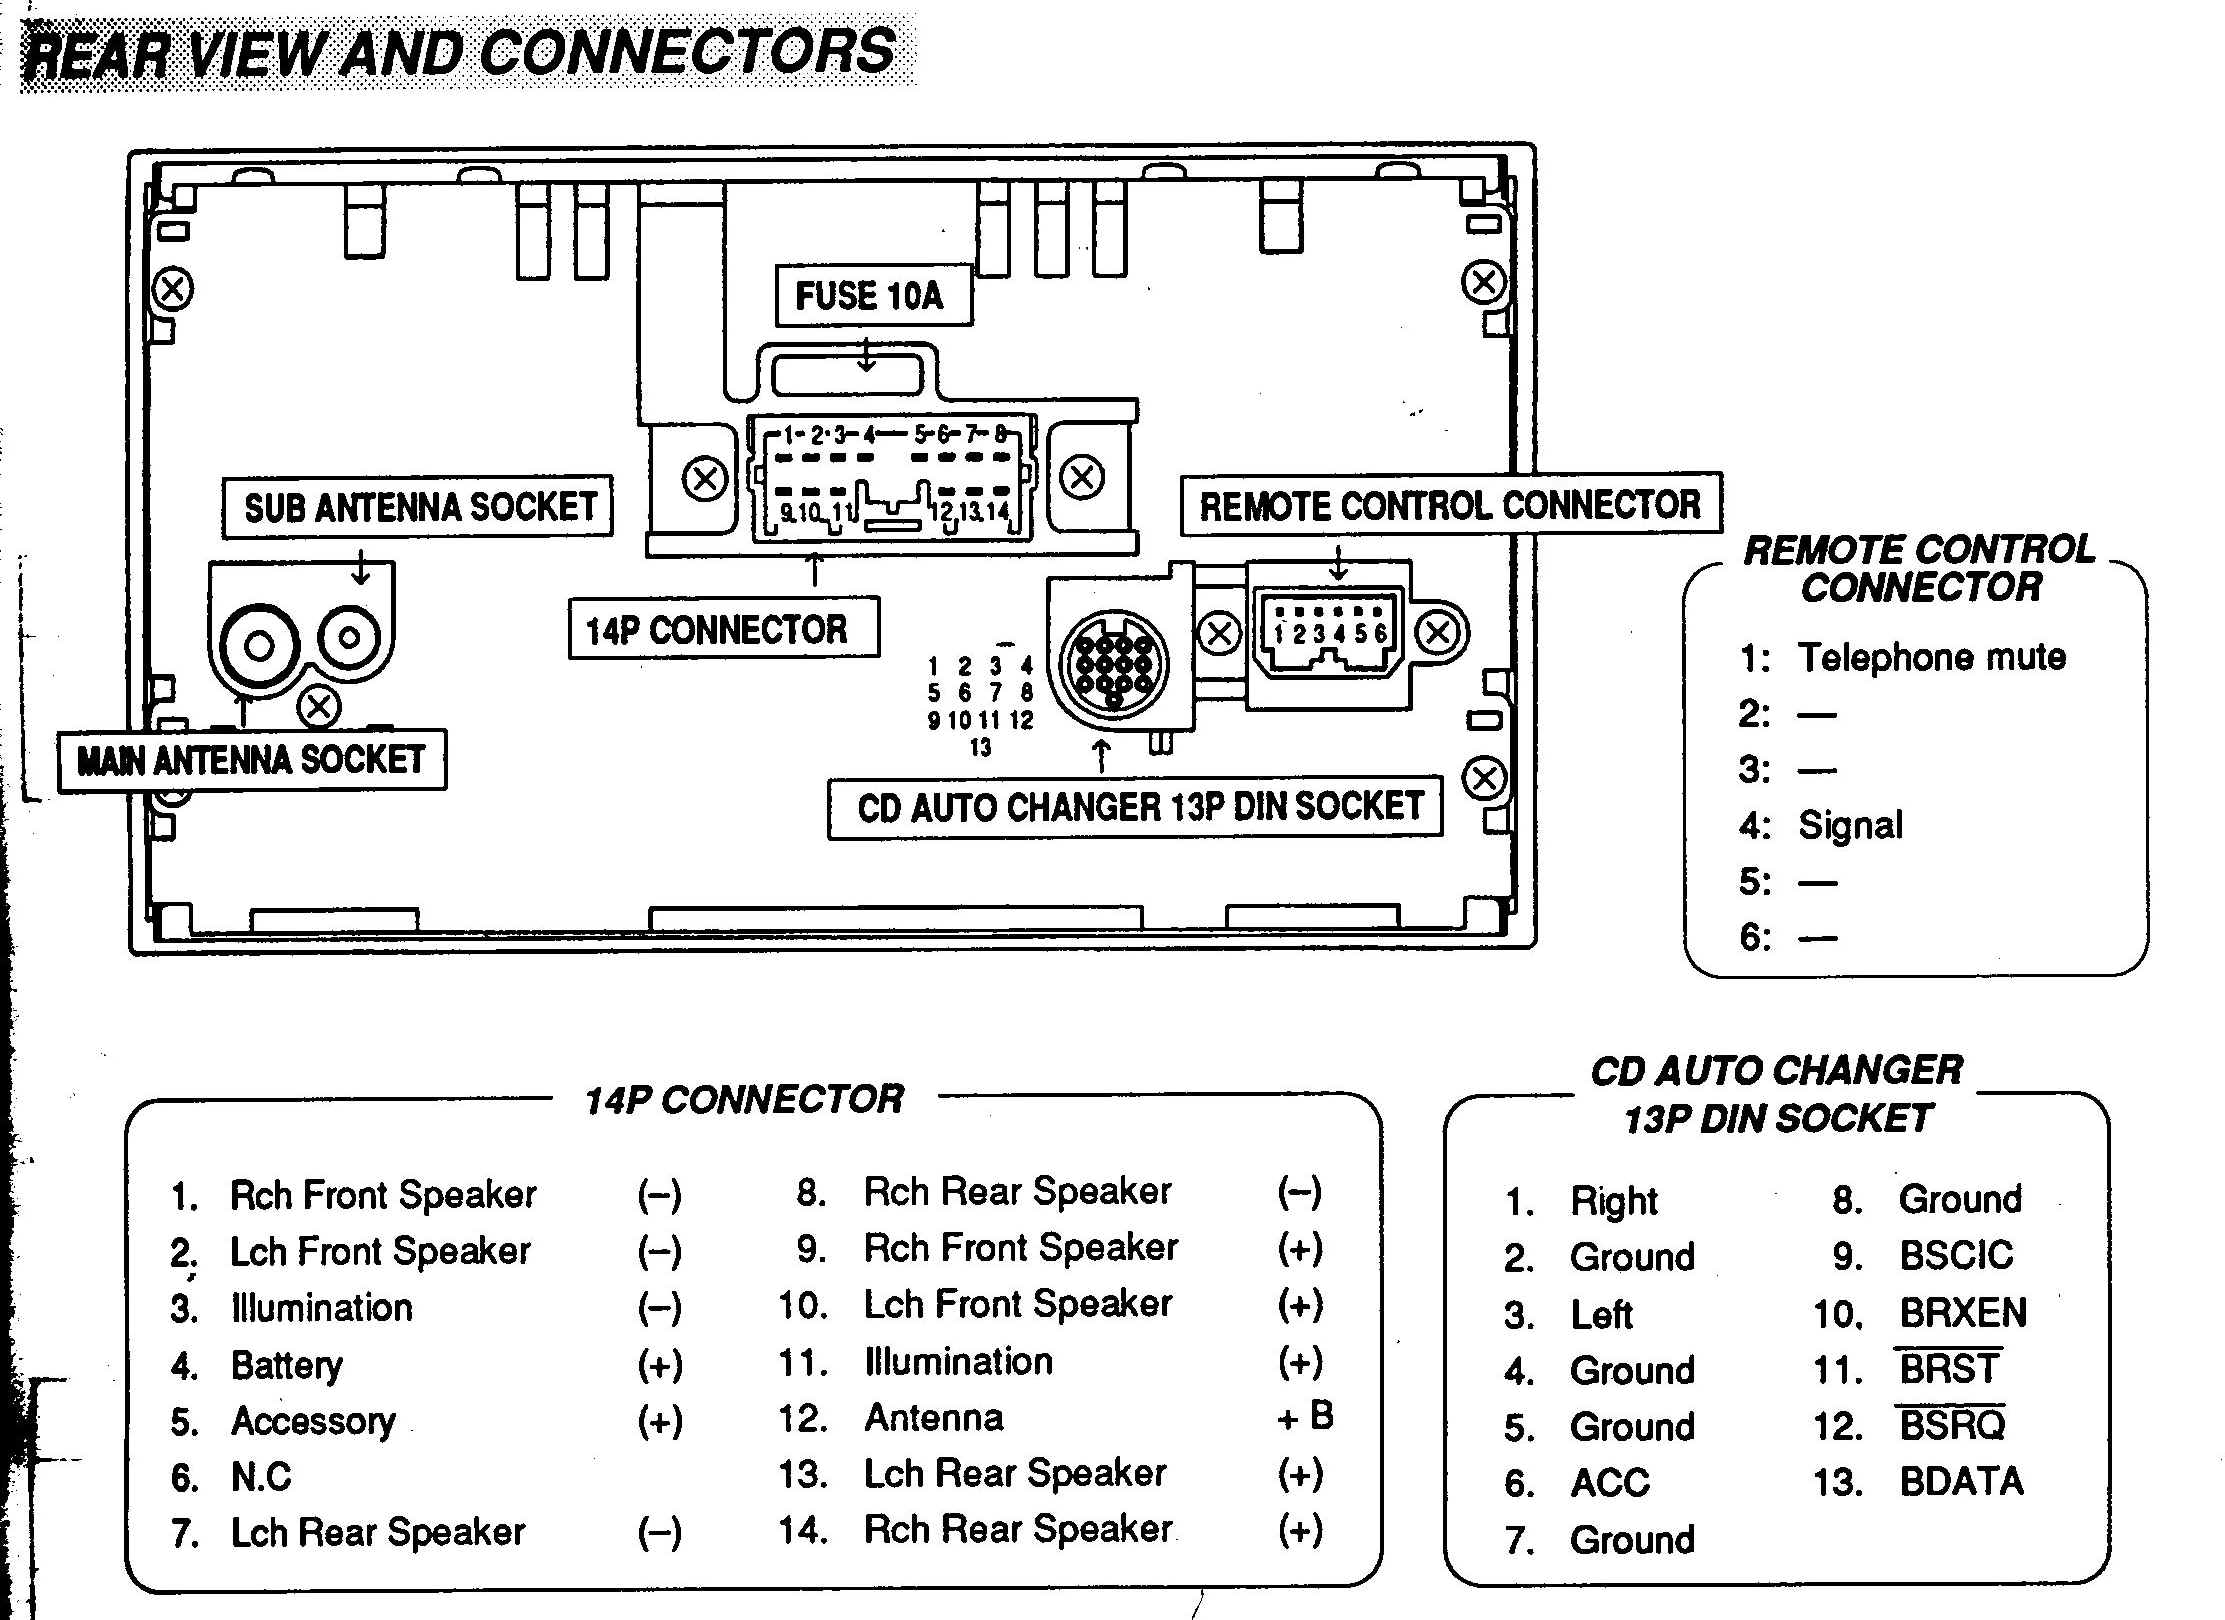 WireHarnessMit121003 mitsubishi radio wiring diagram mitsubishi eclipse wiring diagram 2001 mitsubishi eclipse headlight wiring diagram at soozxer.org